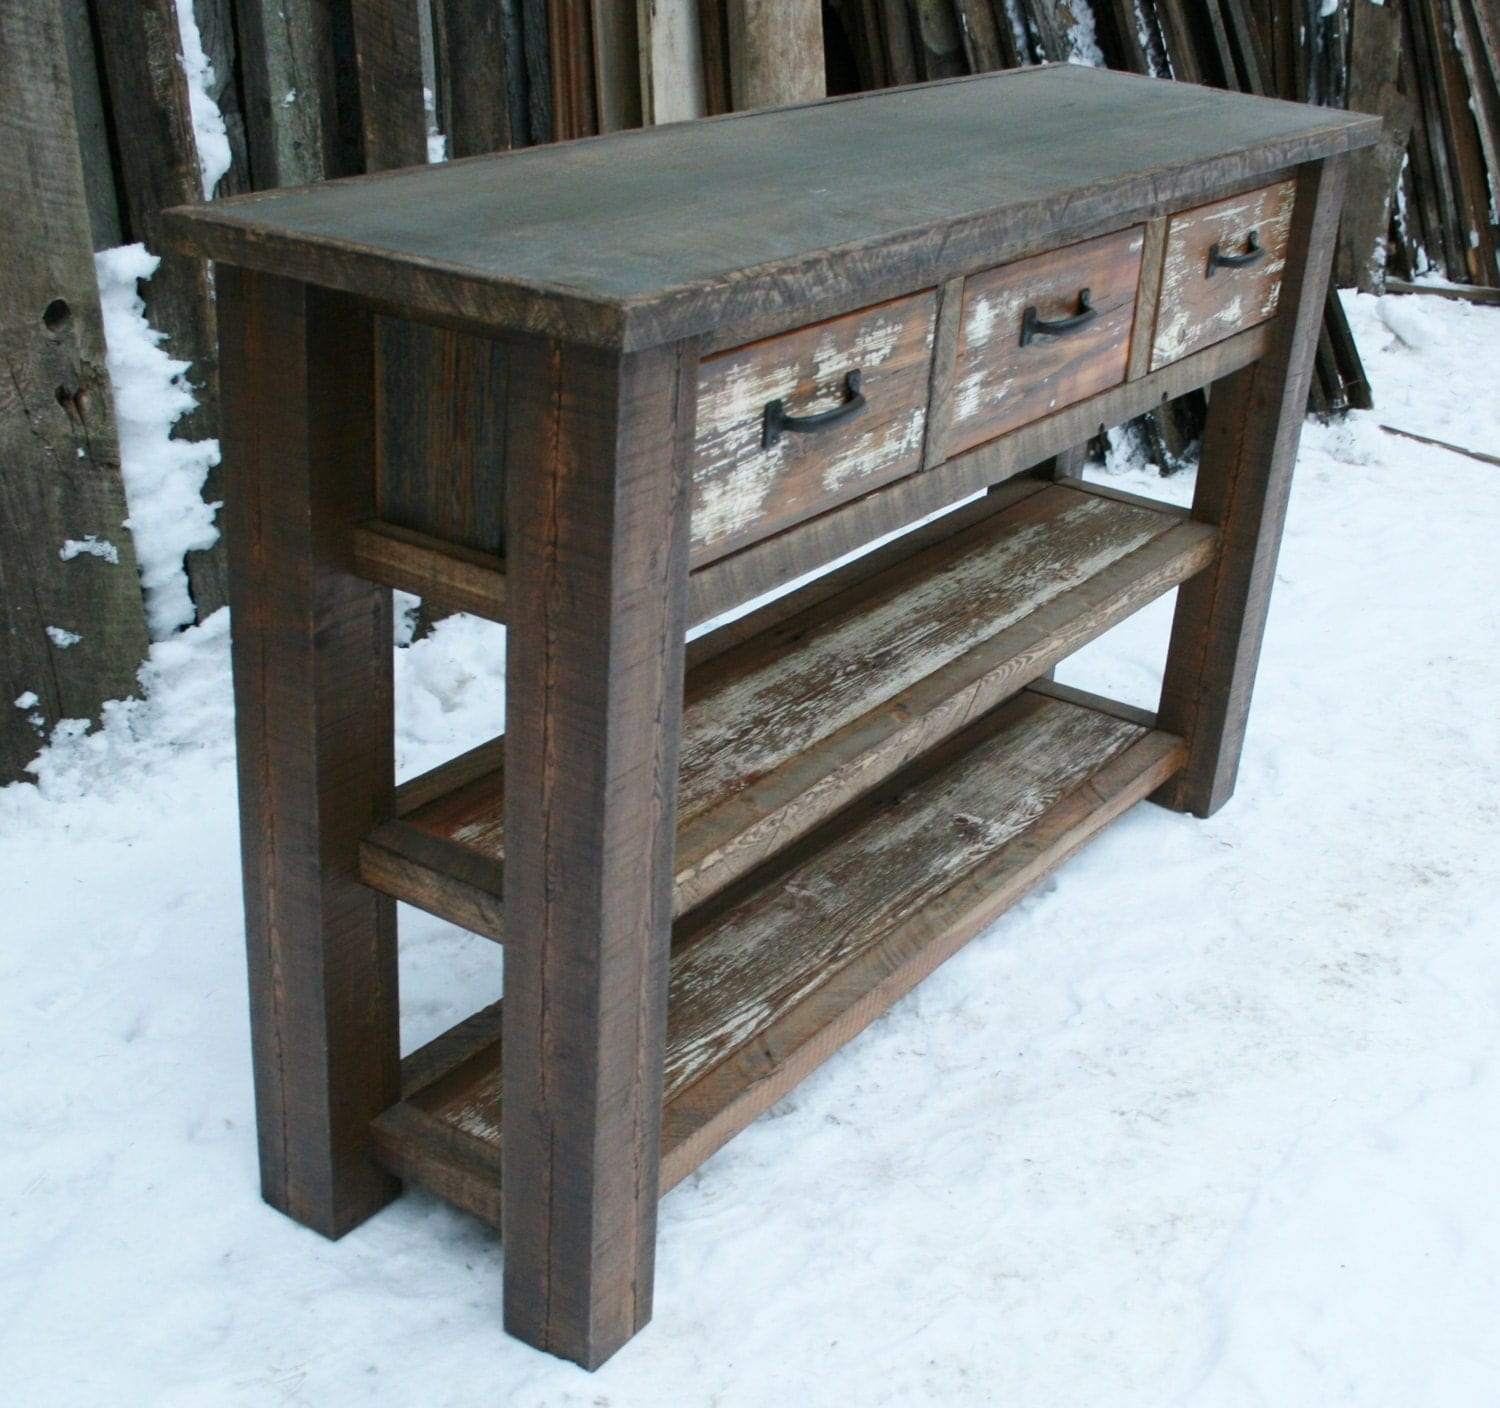 Rustic Wooden Foyer Bench : Reclaimed rustic console entry table by echopeakdesign on etsy